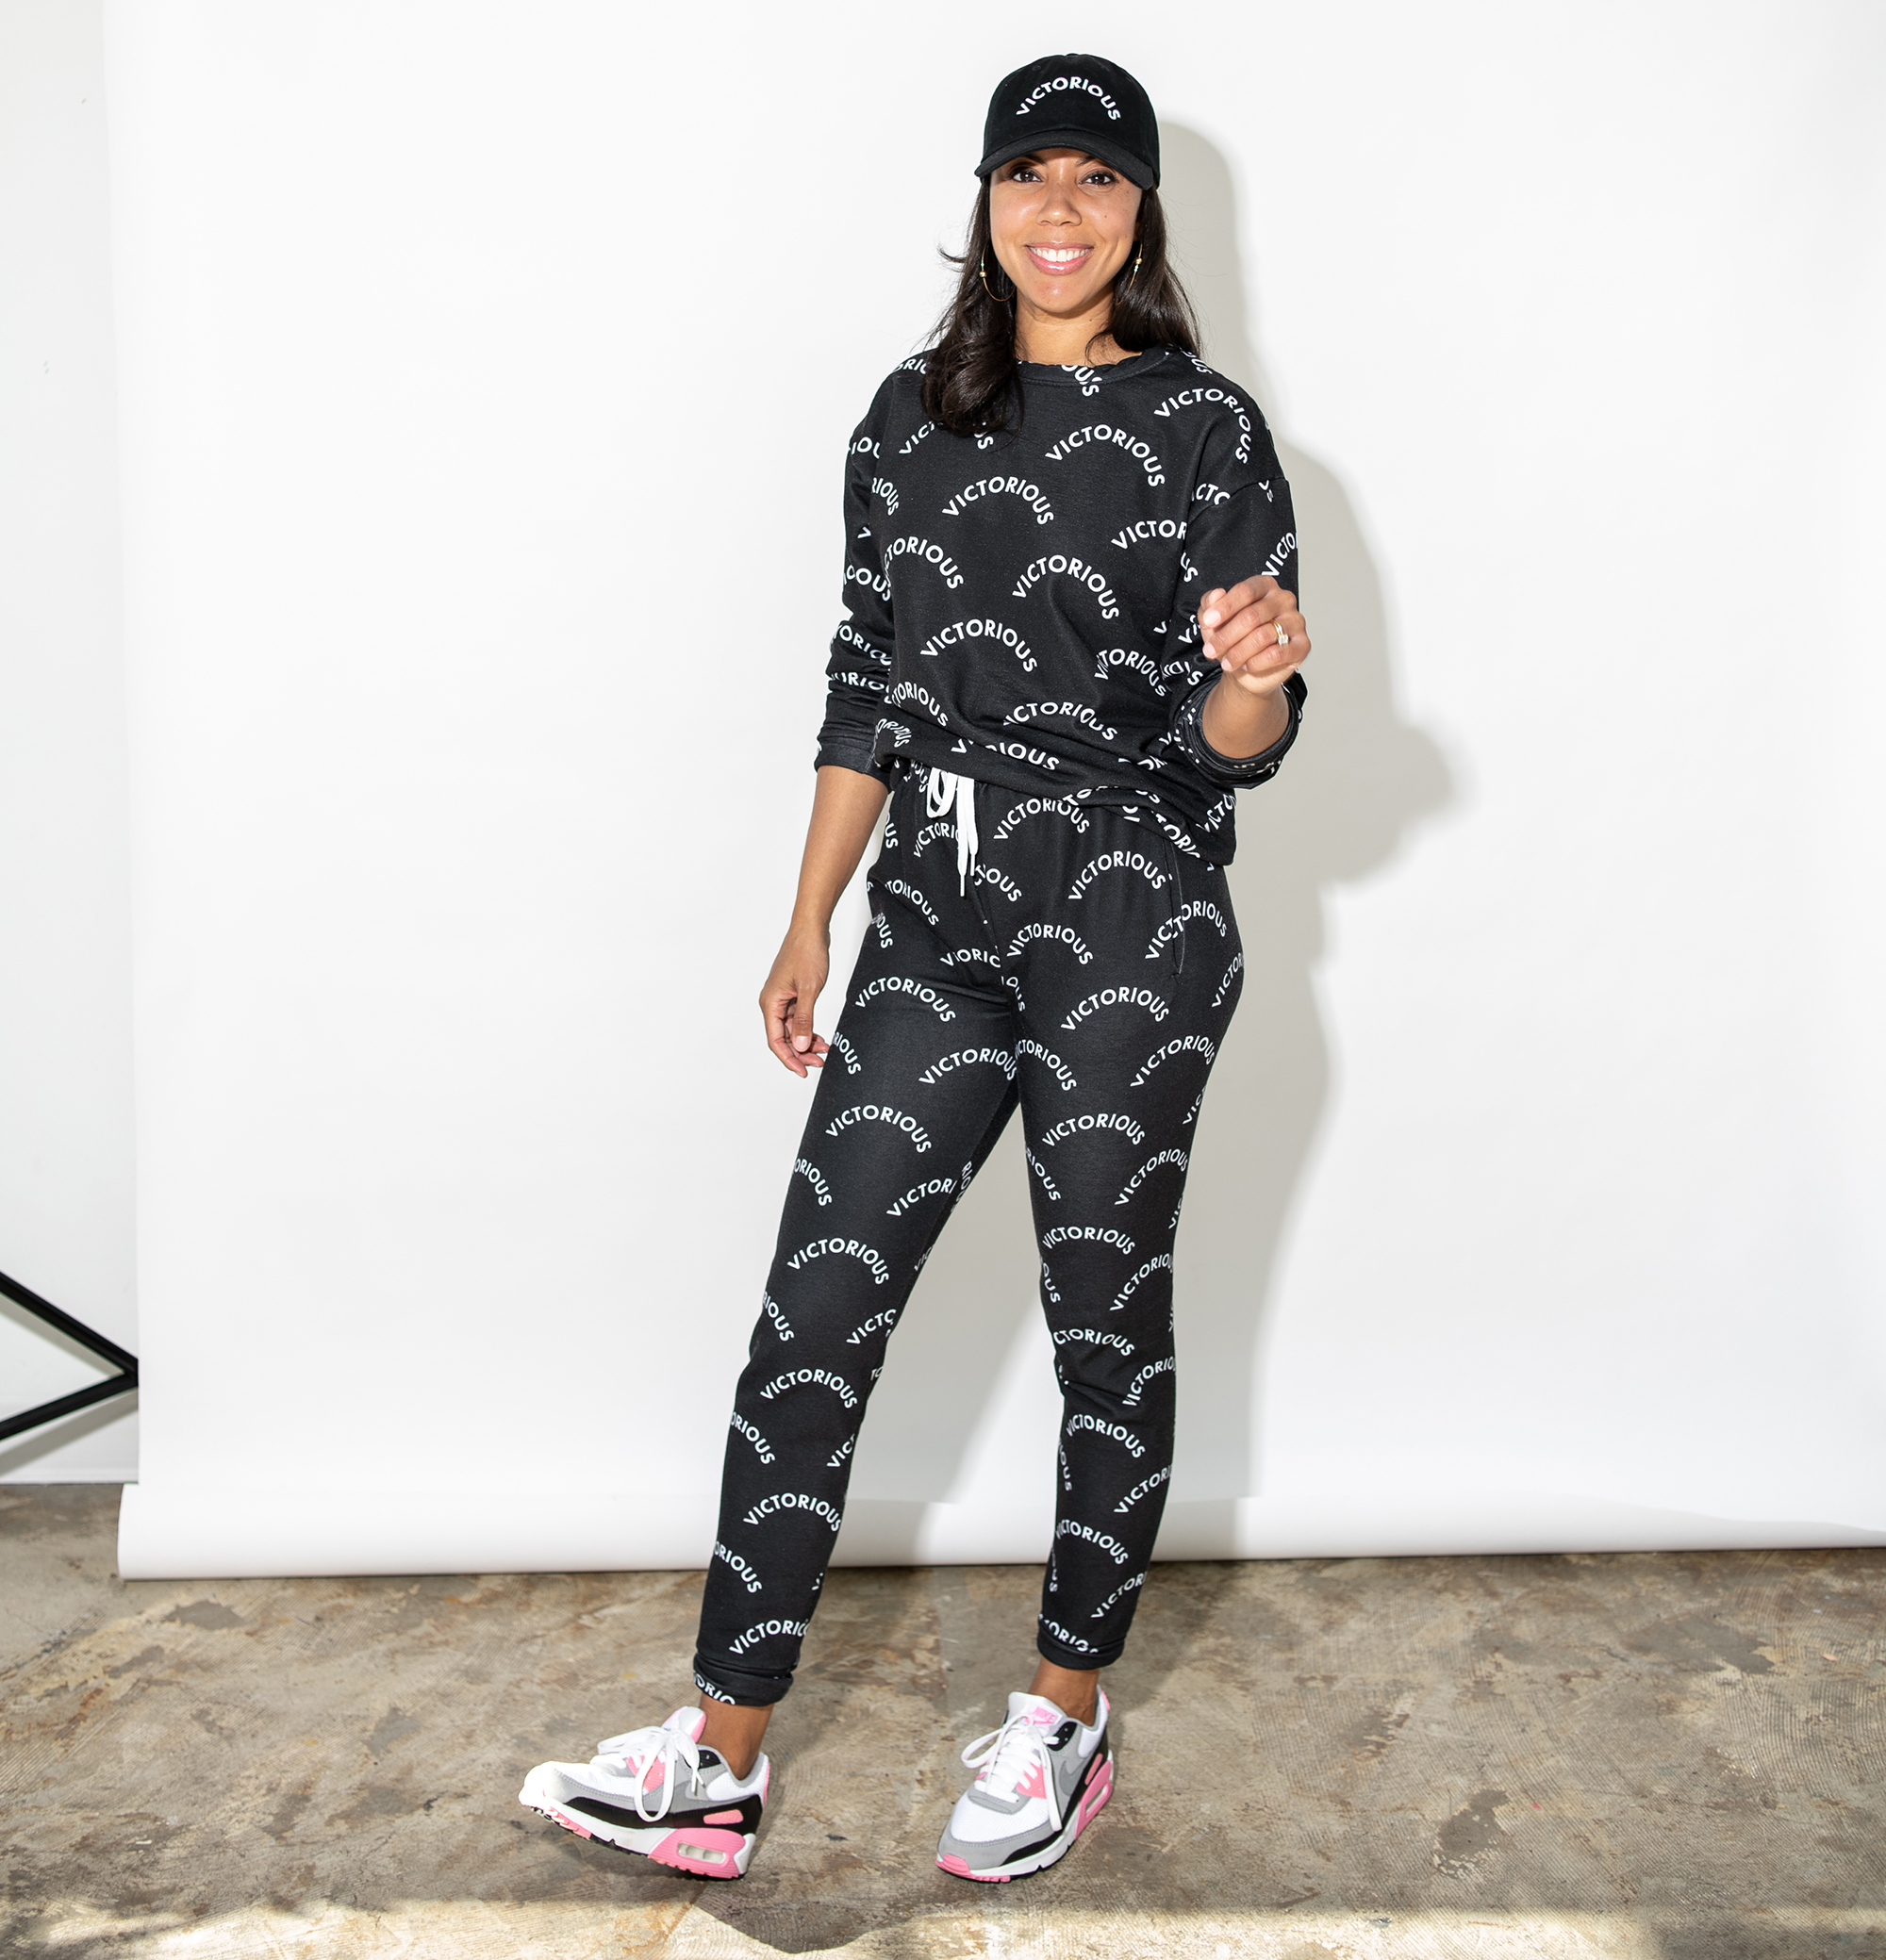 Dionna Dorsey in District of Clothing 'Victorious' sweatshirt, joggers and hat.